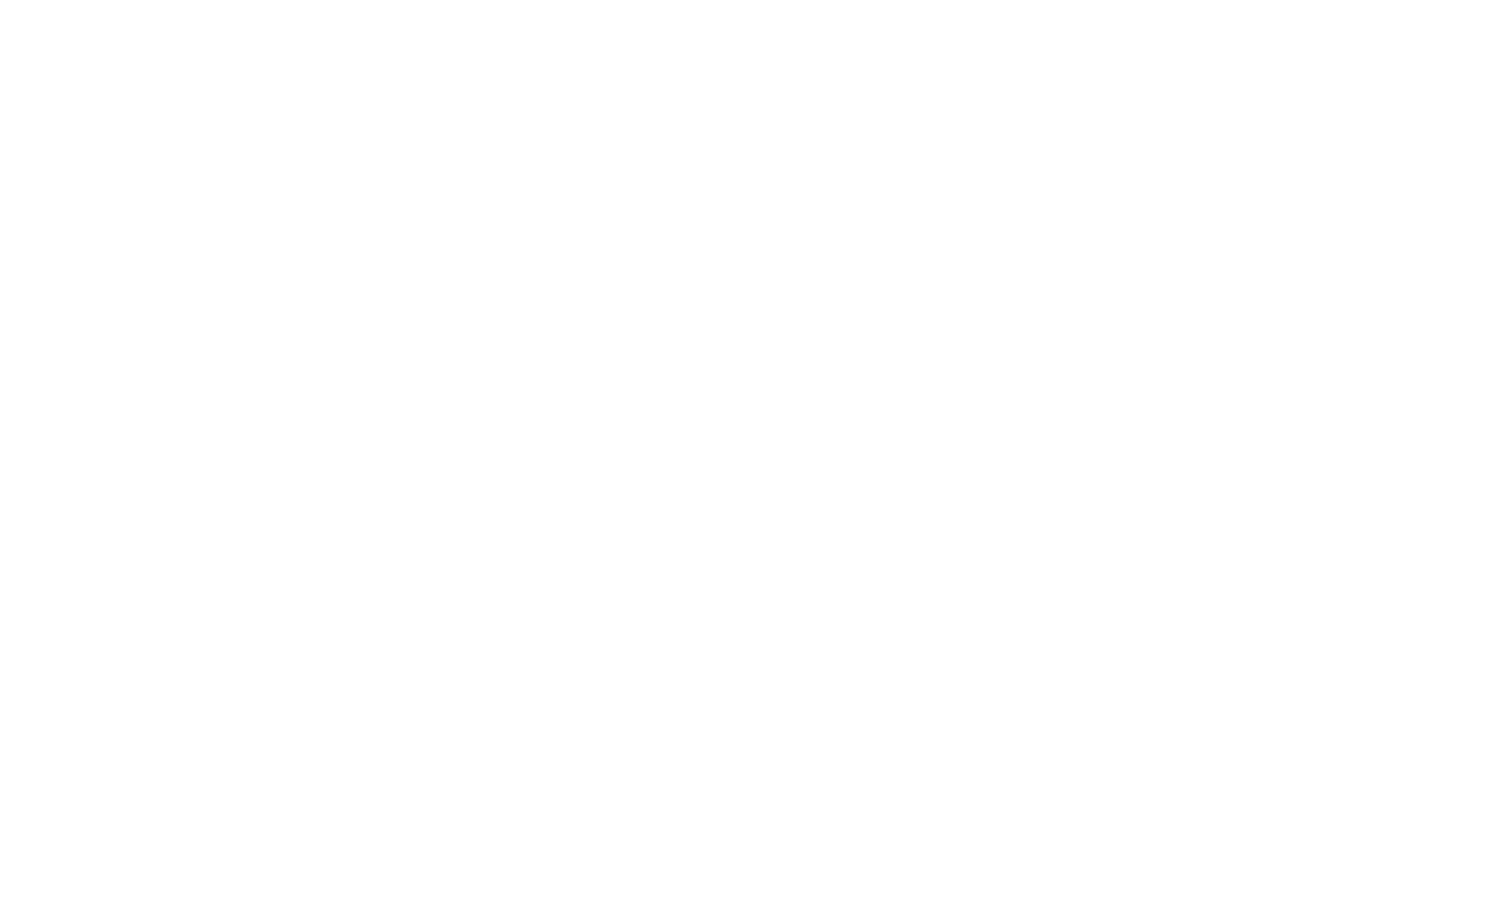 New Possibilities Coaching | Lillie Marshall